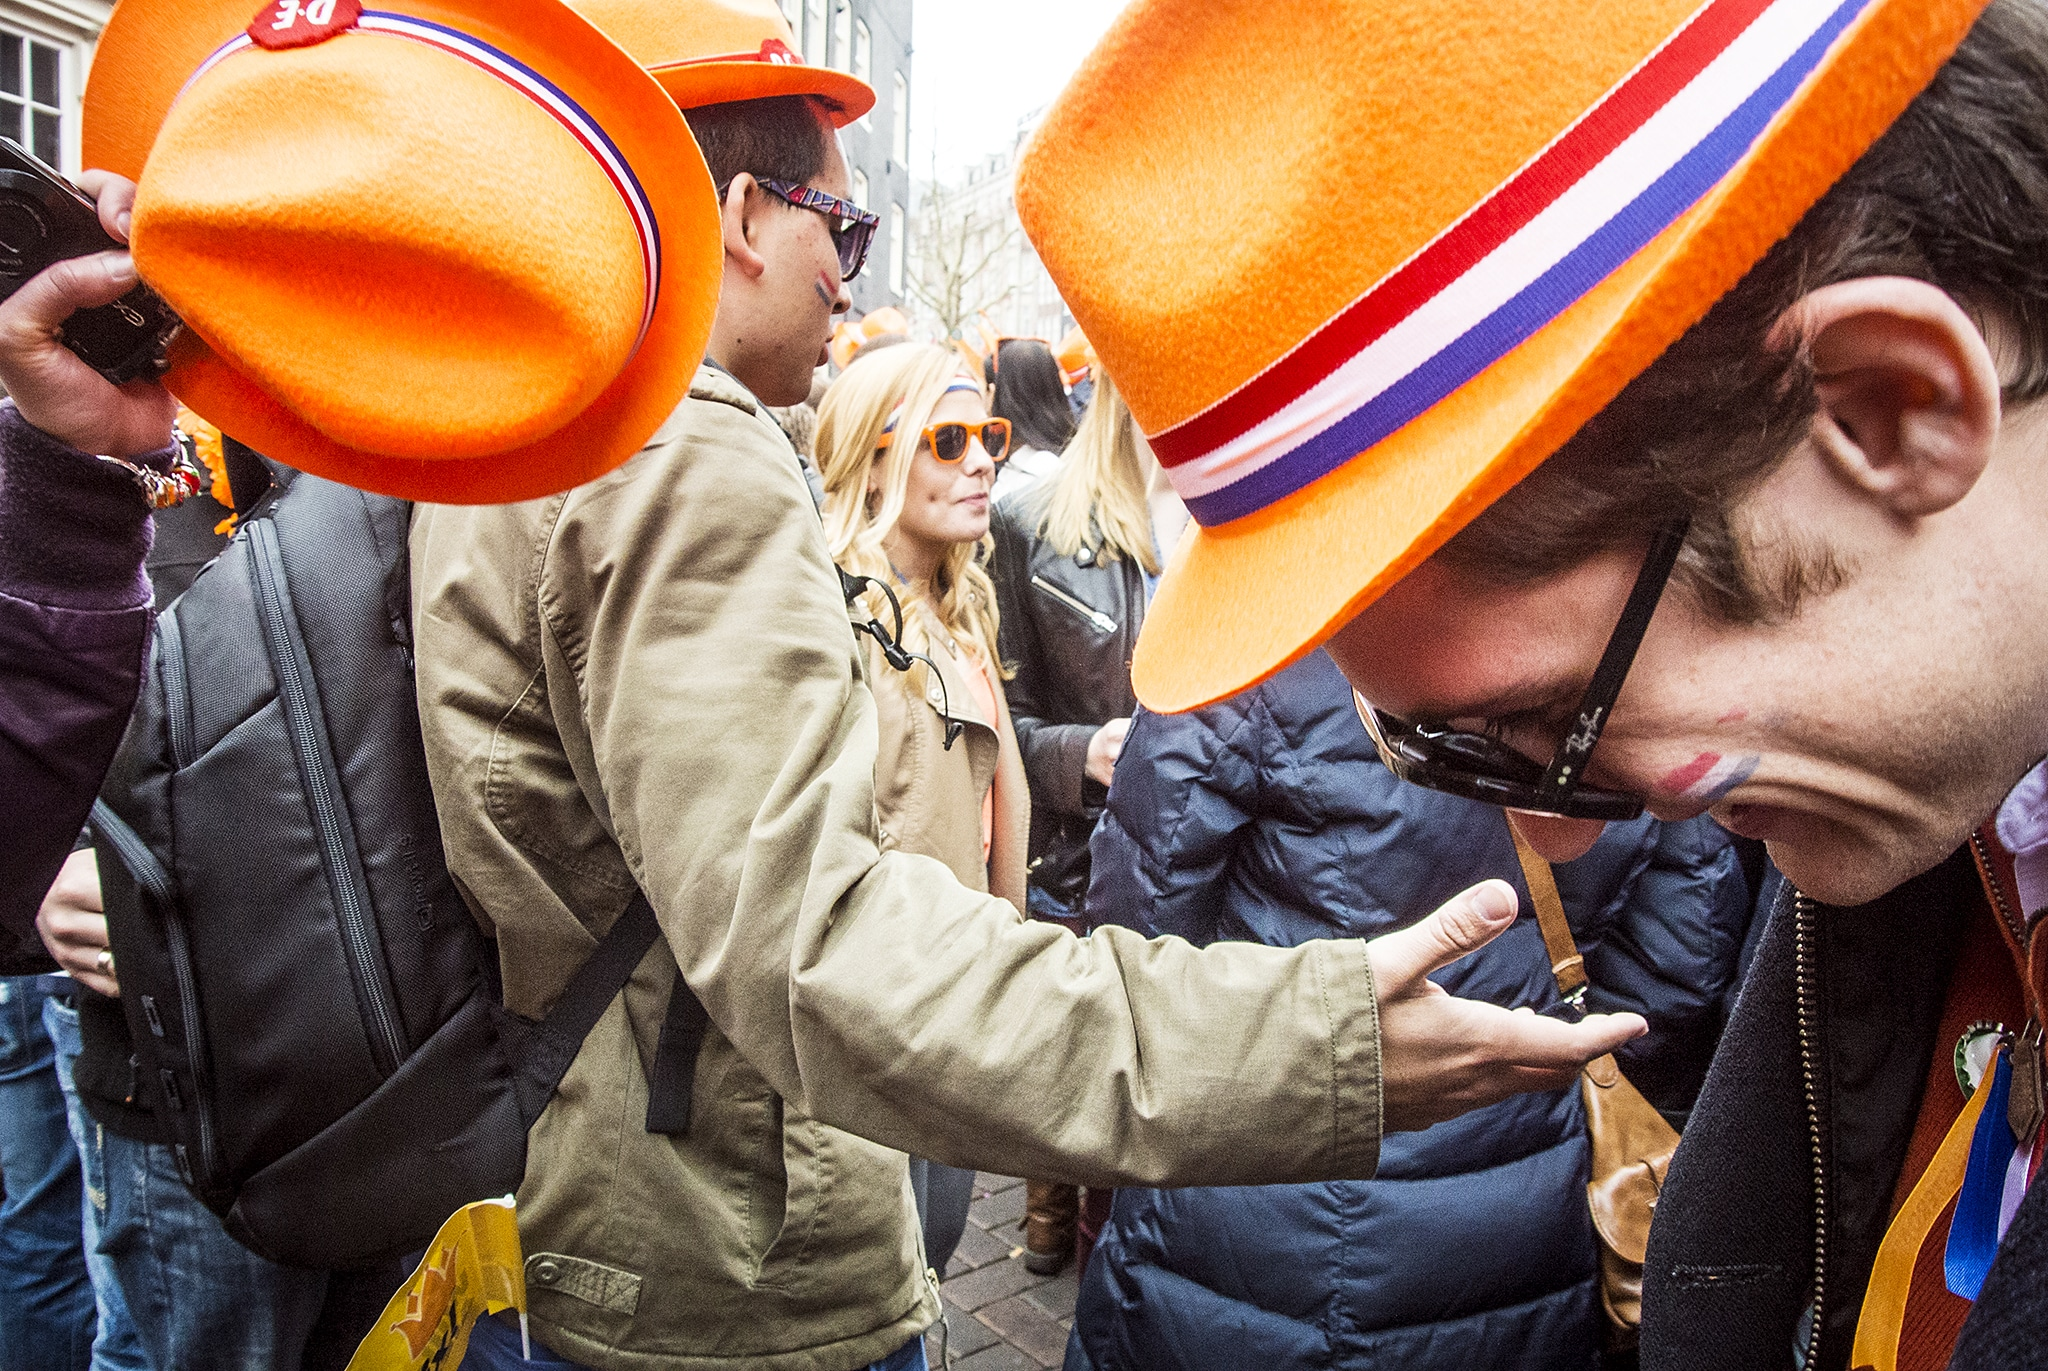 People wearing orange hats on the street for King's Day